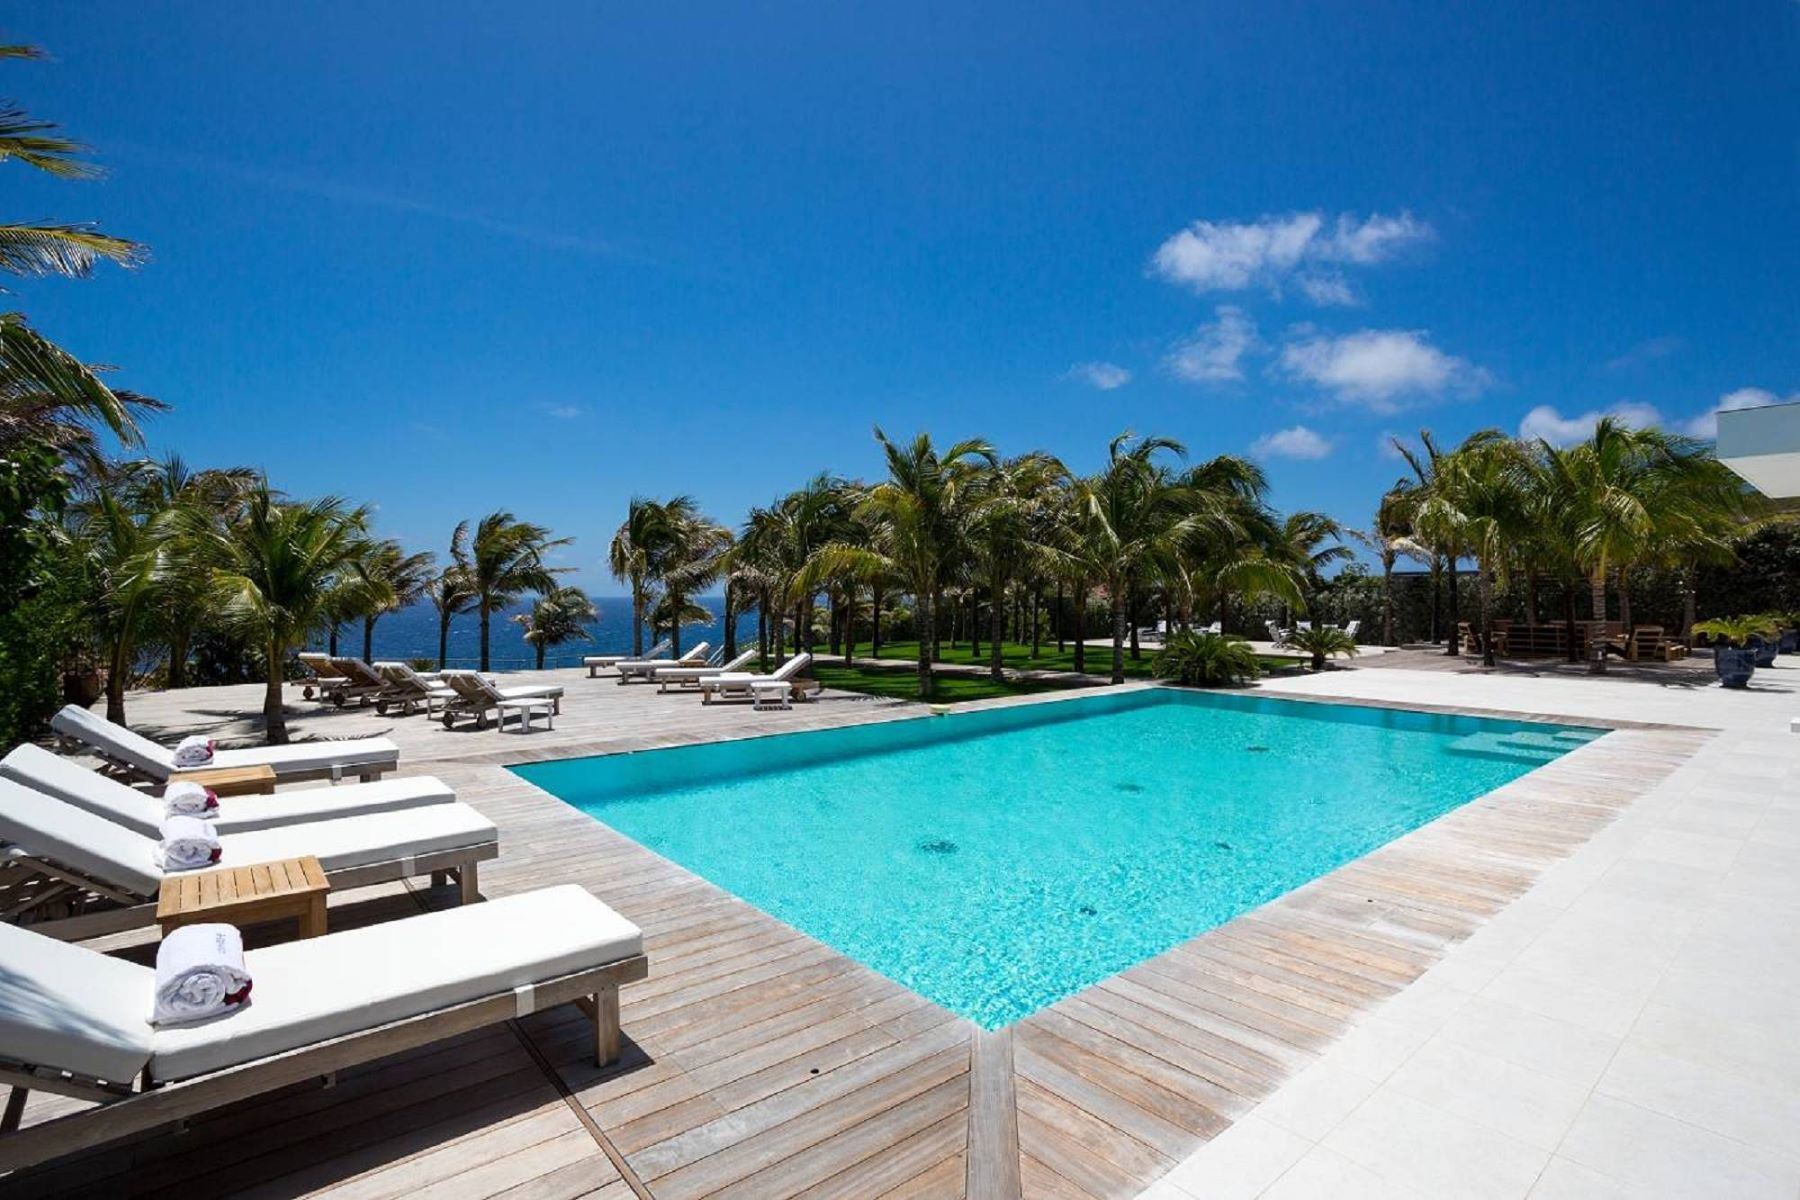 Single Family Homes for Sale at Villa Good News Petit Cul-de-Sac Other St. Barthelemy, Cities In St. Barthelemy 97133 St. Barthelemy